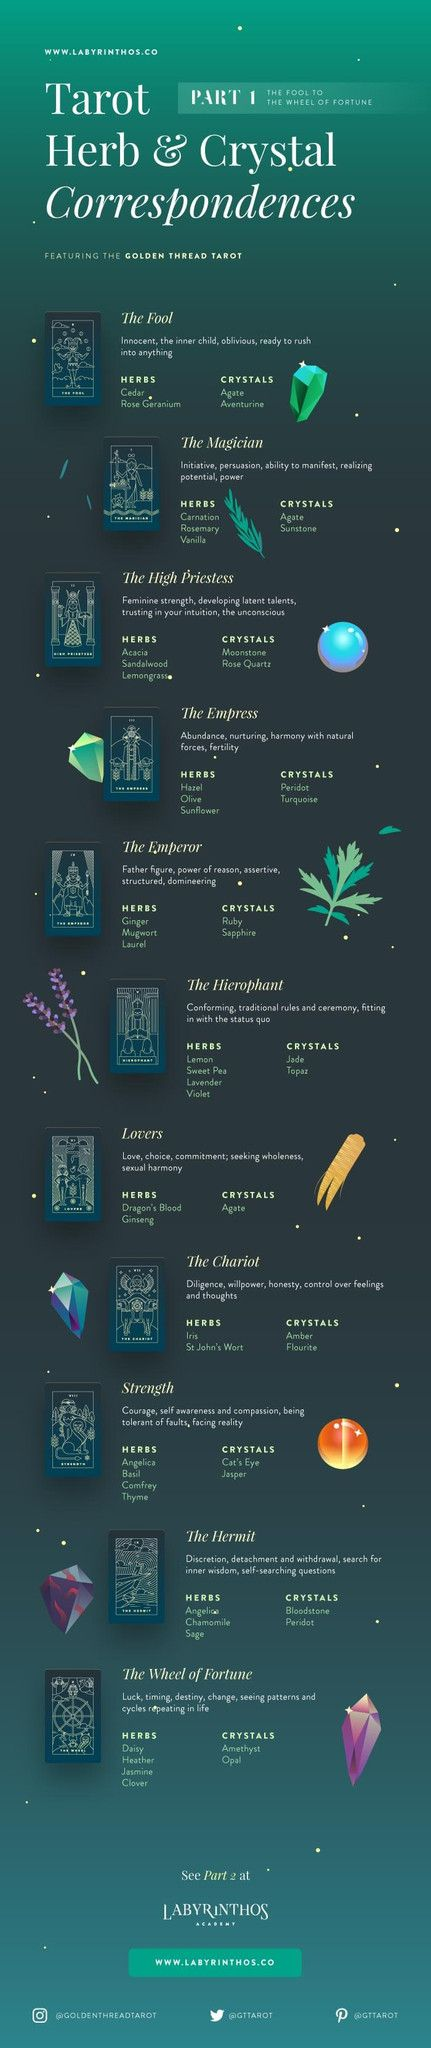 Crystals, Tarot Cards and Herbal Correspondences Chart - Part 1: From the Fool to the Wheel of Fortune. Infographics about witchcraft, wicca, mysticism, magick, rituals, paganism, herbalism, spells, and the occult.